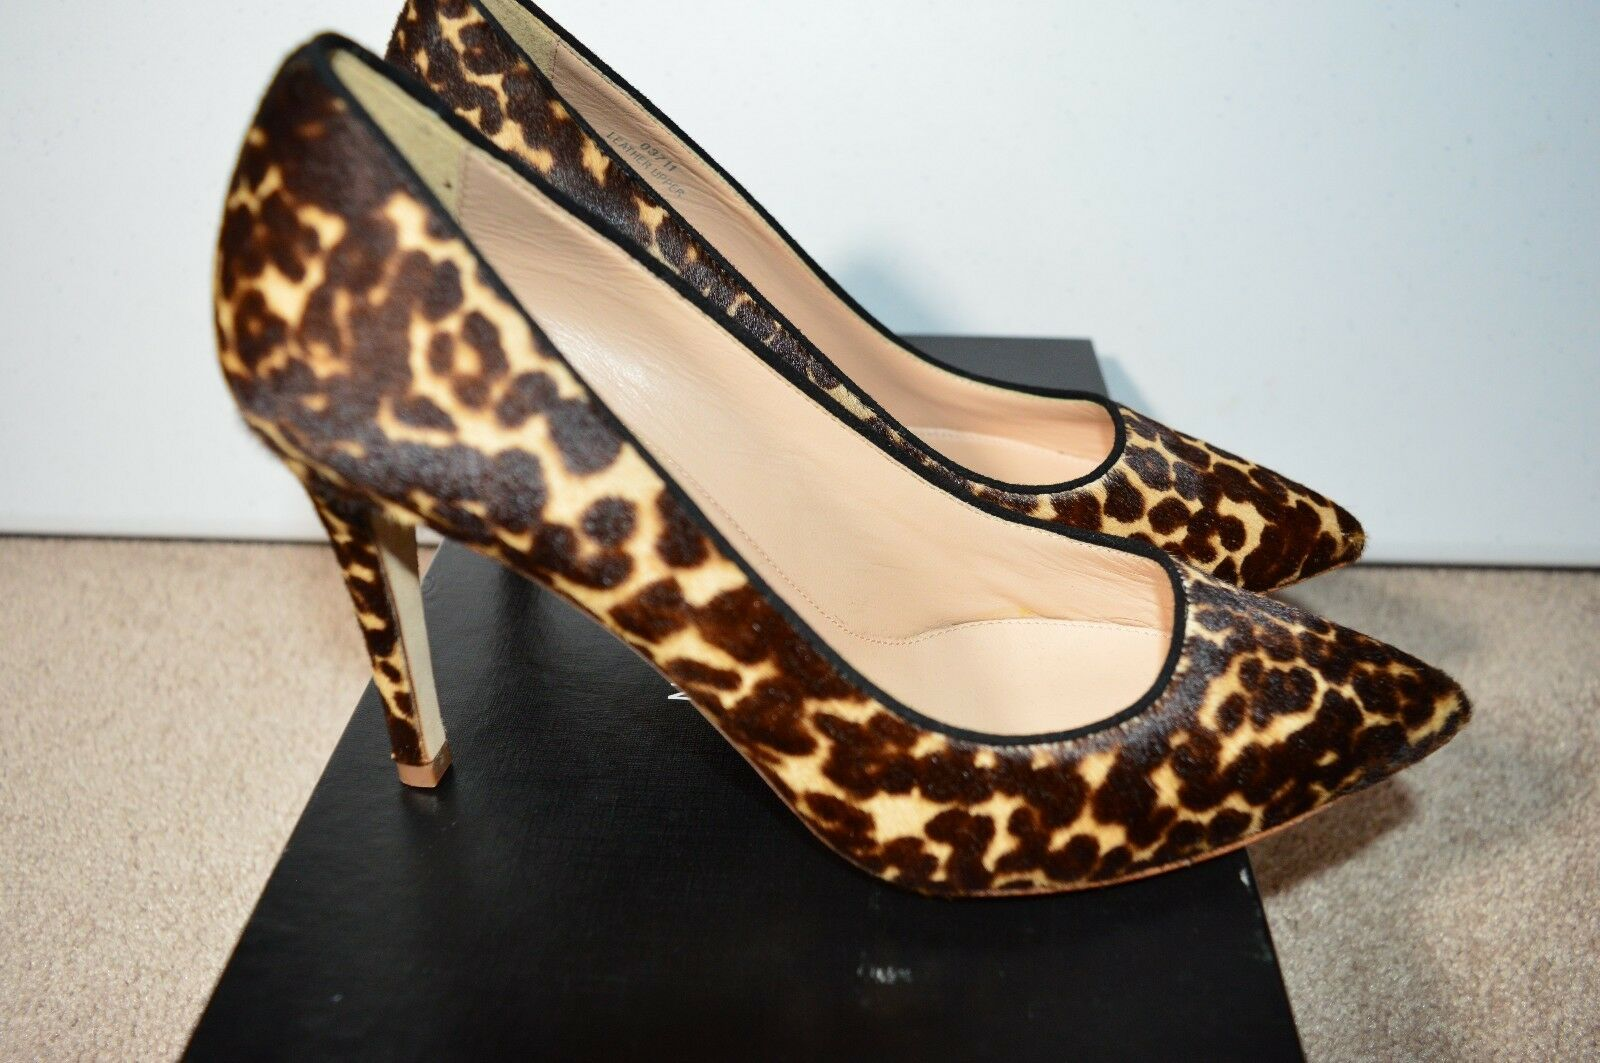 Primary image for J CREW Collection Everly Calf Hair Pumps Heel Camel Pony Size 6.5 $350 NEW